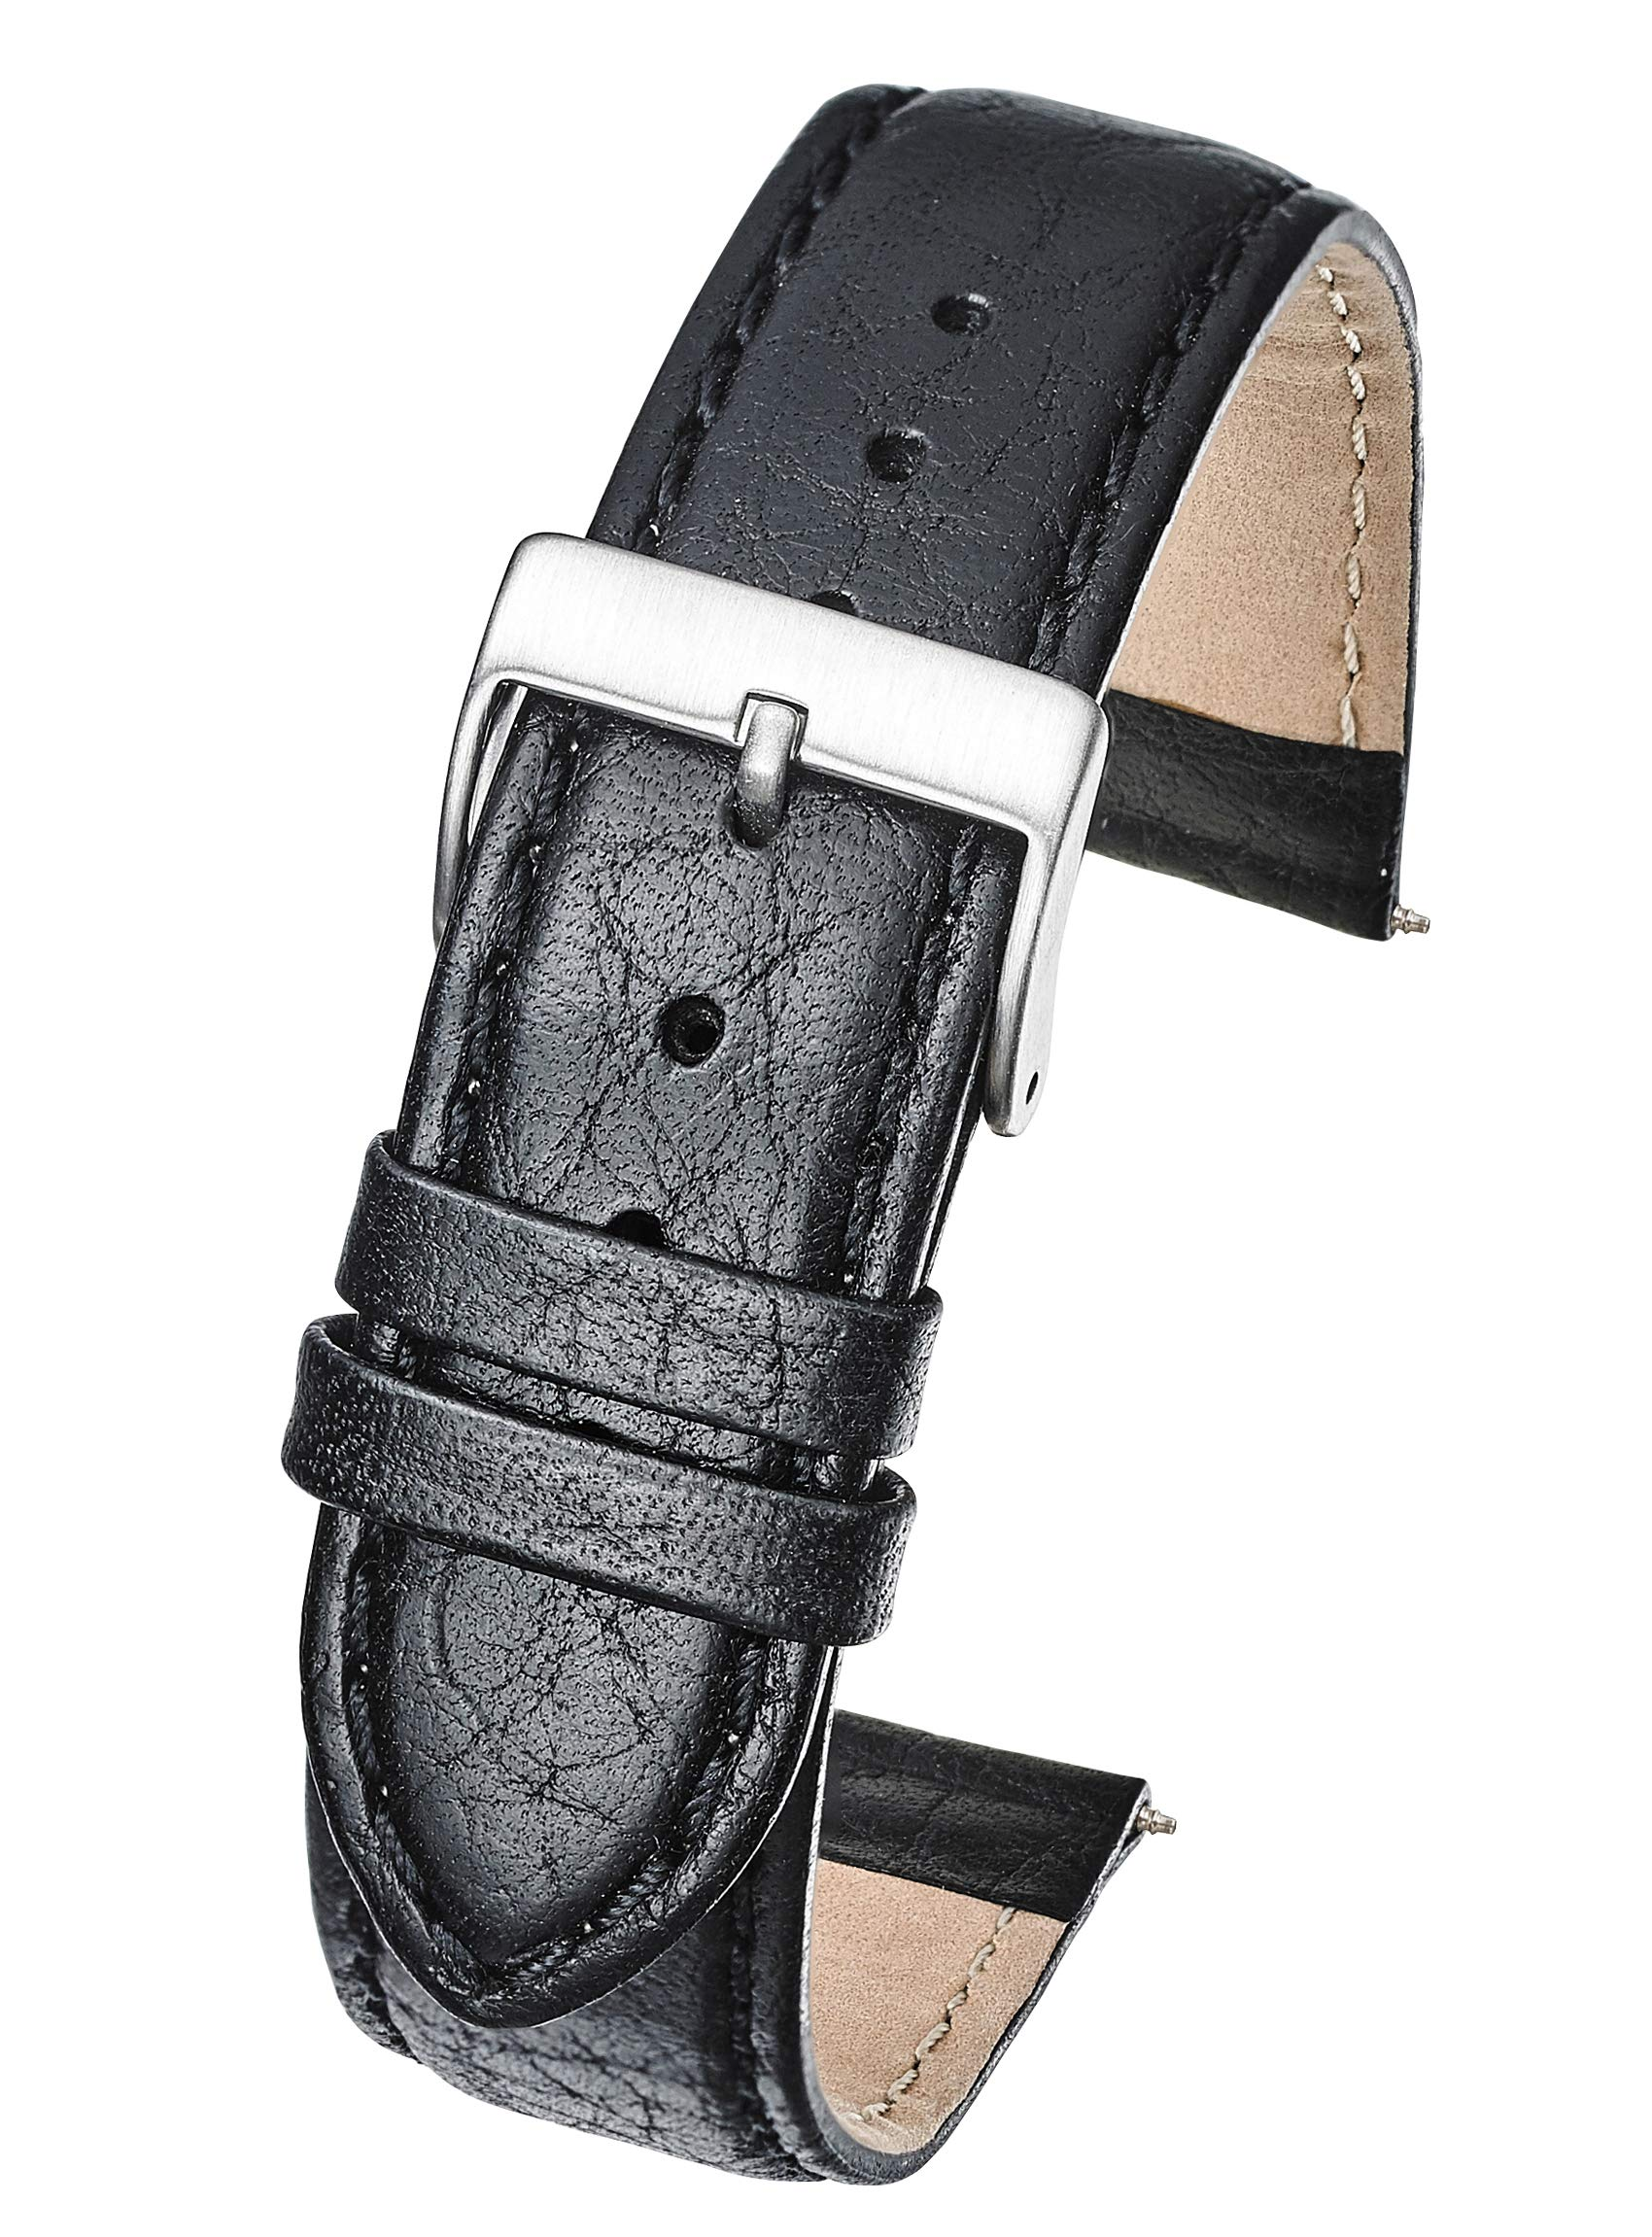 Alpine Soft Stitched Semi Padded Genuine Leather Buffalo Grain Watch Band in Extra Long for Wider Wrists ONLY- Black Brown Tan in Sizes 18XL to 26XL (fits Wrist Sizes 7 1/2 to 9 inch)